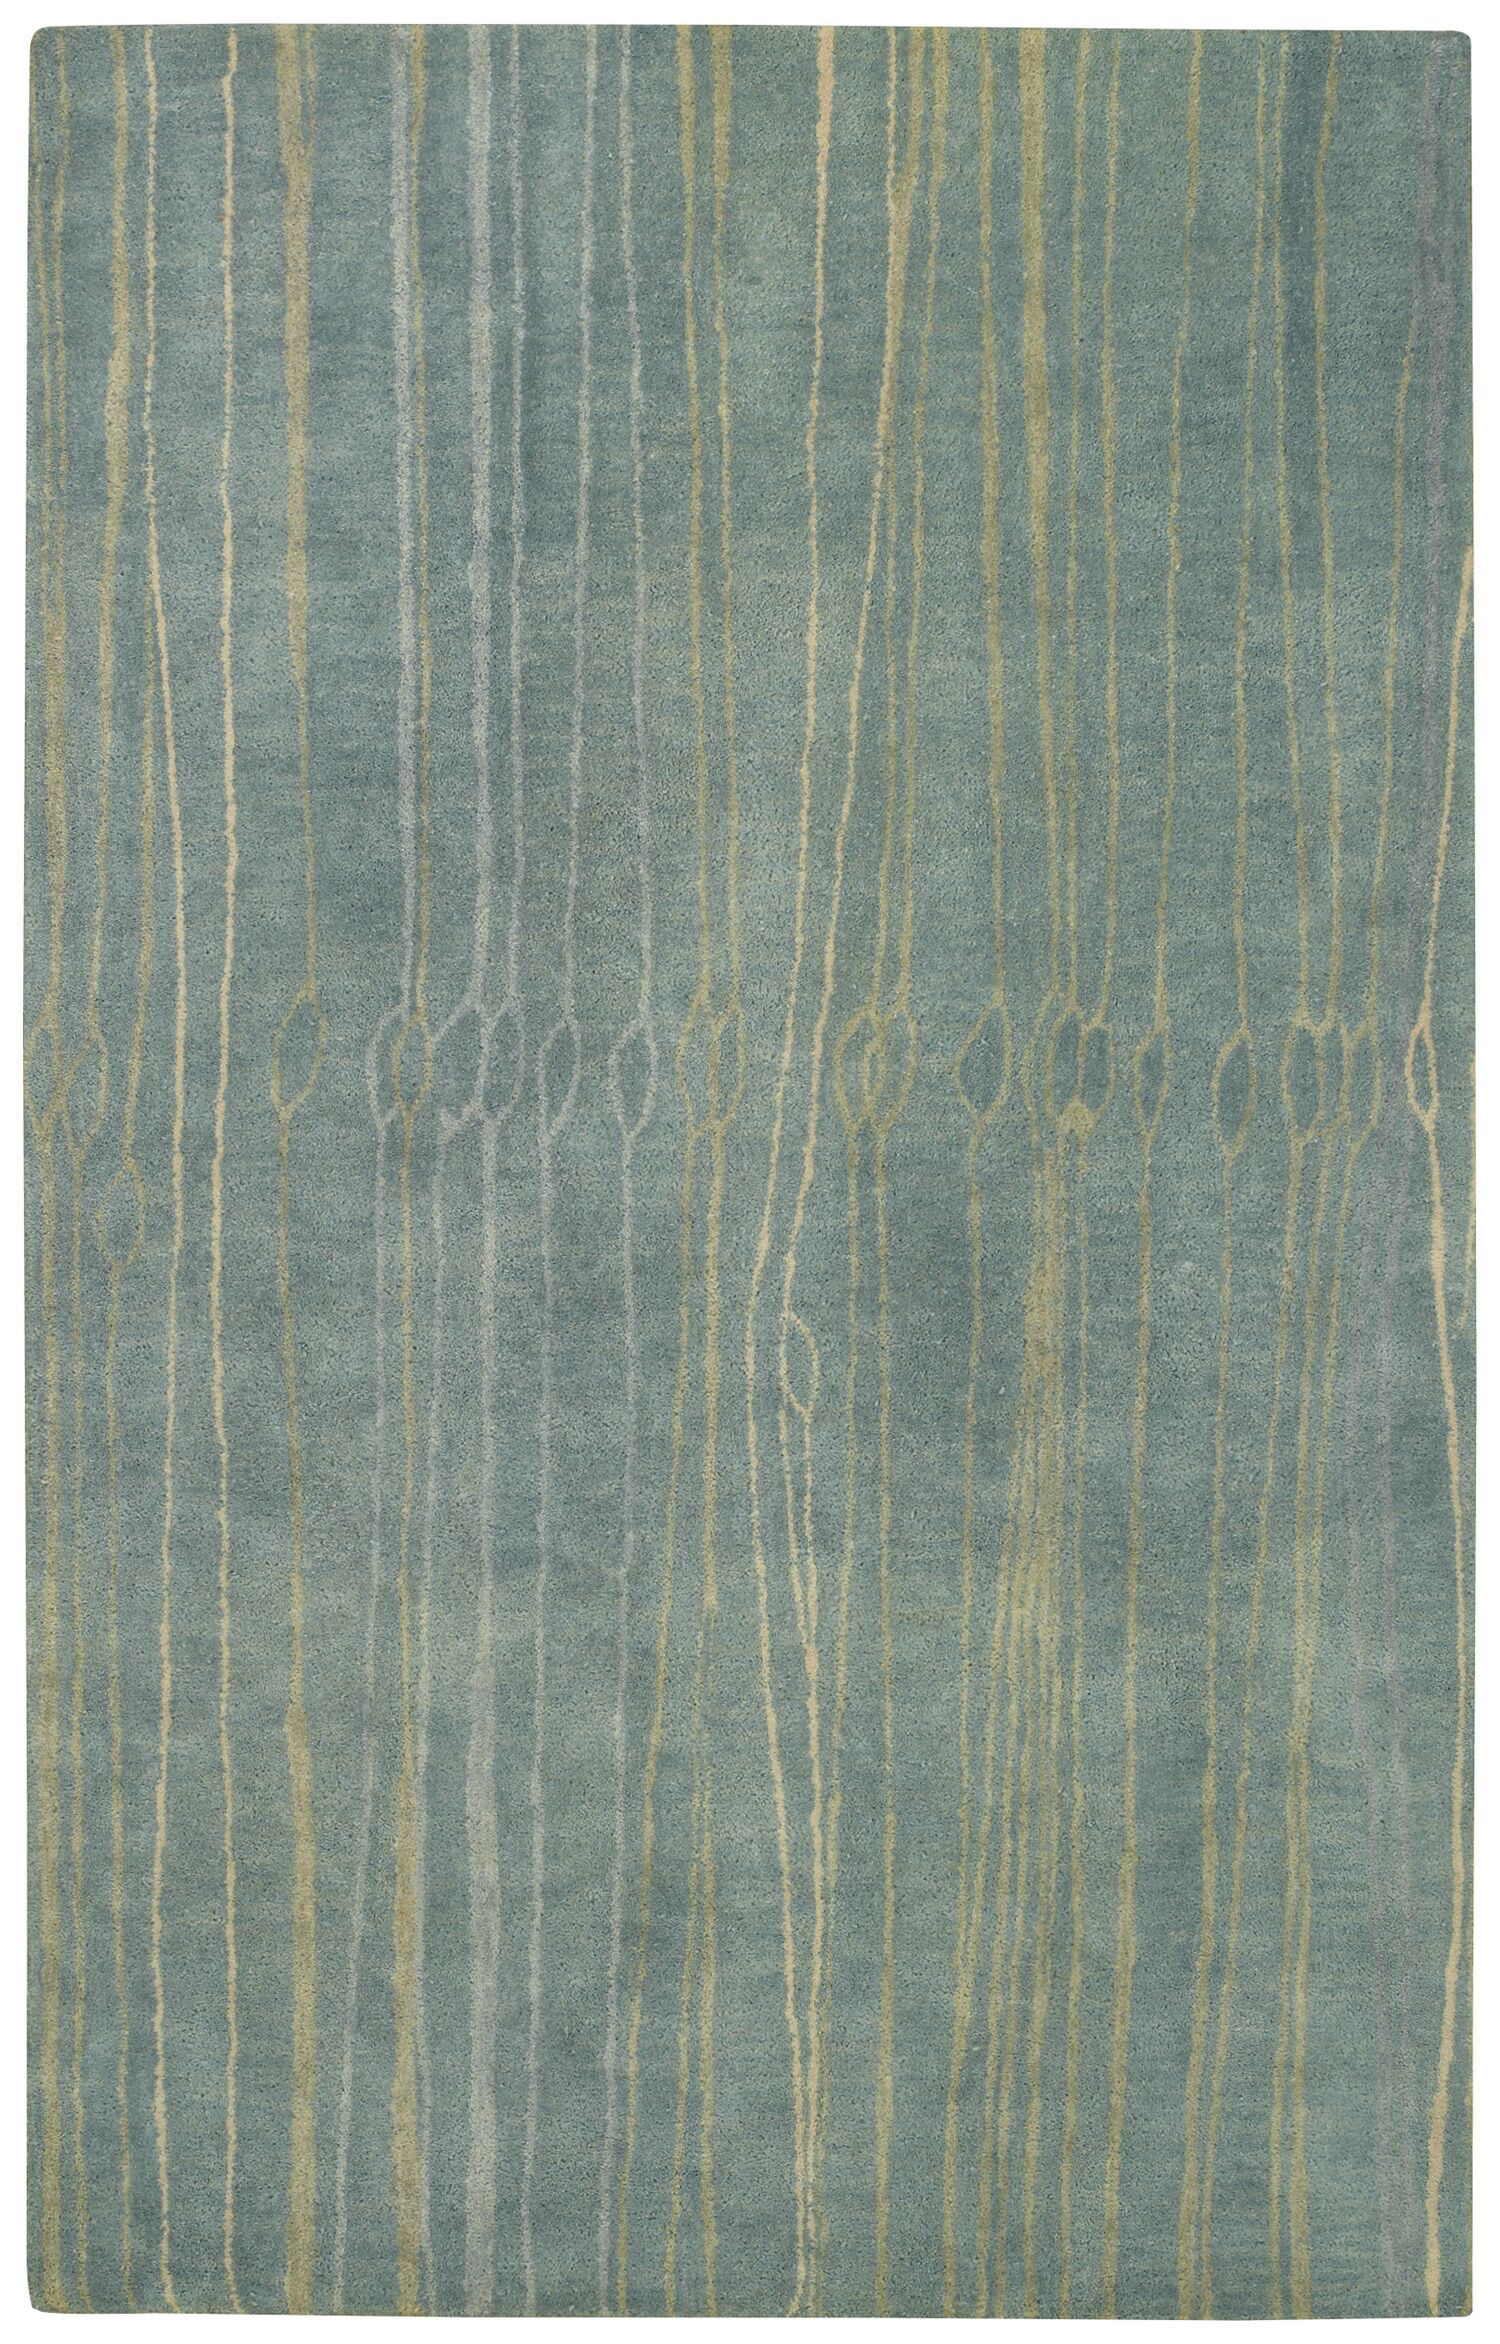 Fingerling China Blue Area Rug Rug Size: Rectangle 5' x 8'